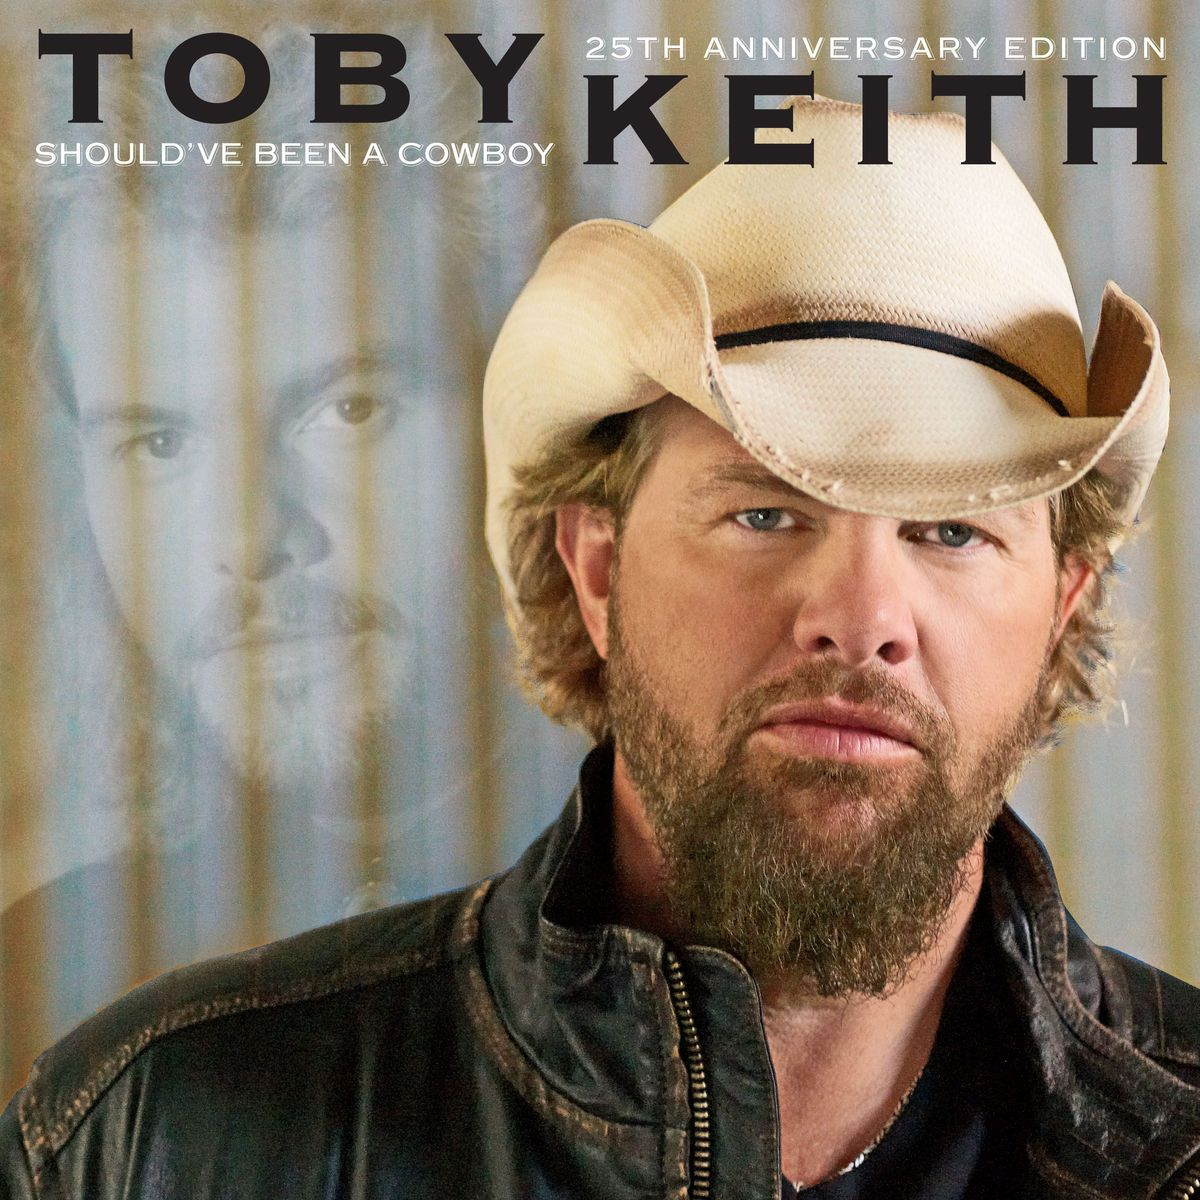 Toby Keith - Should've been a cowboy - Album Cover